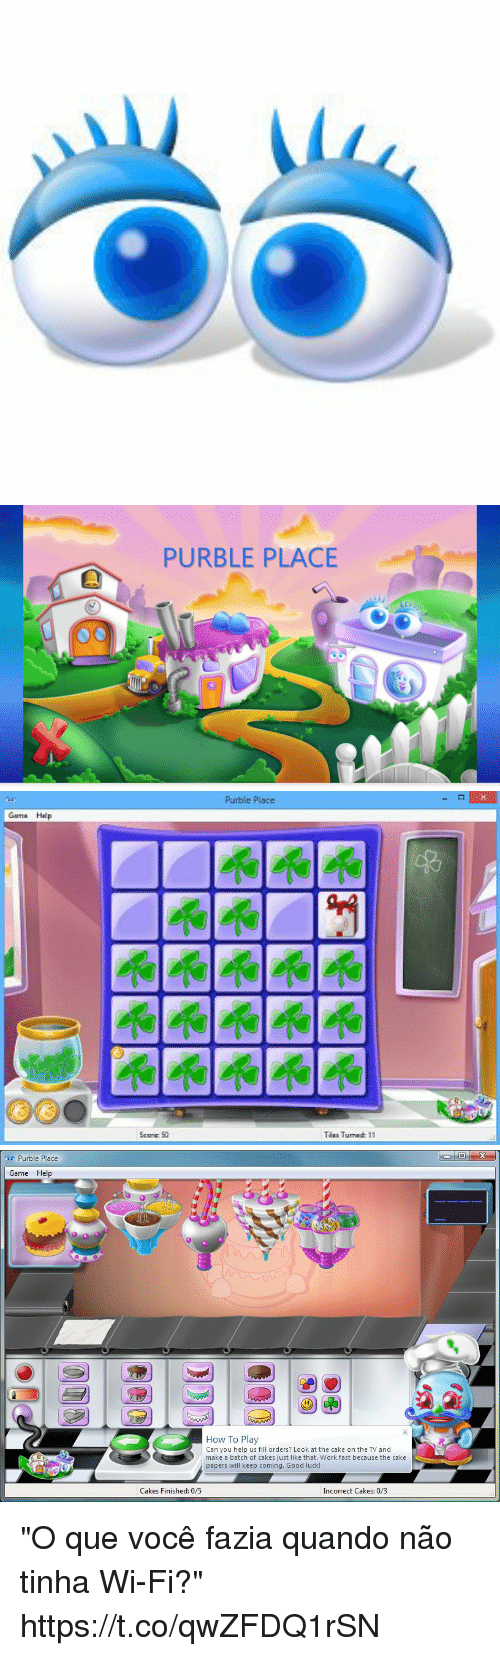 Free Download Purble Place for Windows XP and How to Play Purble...